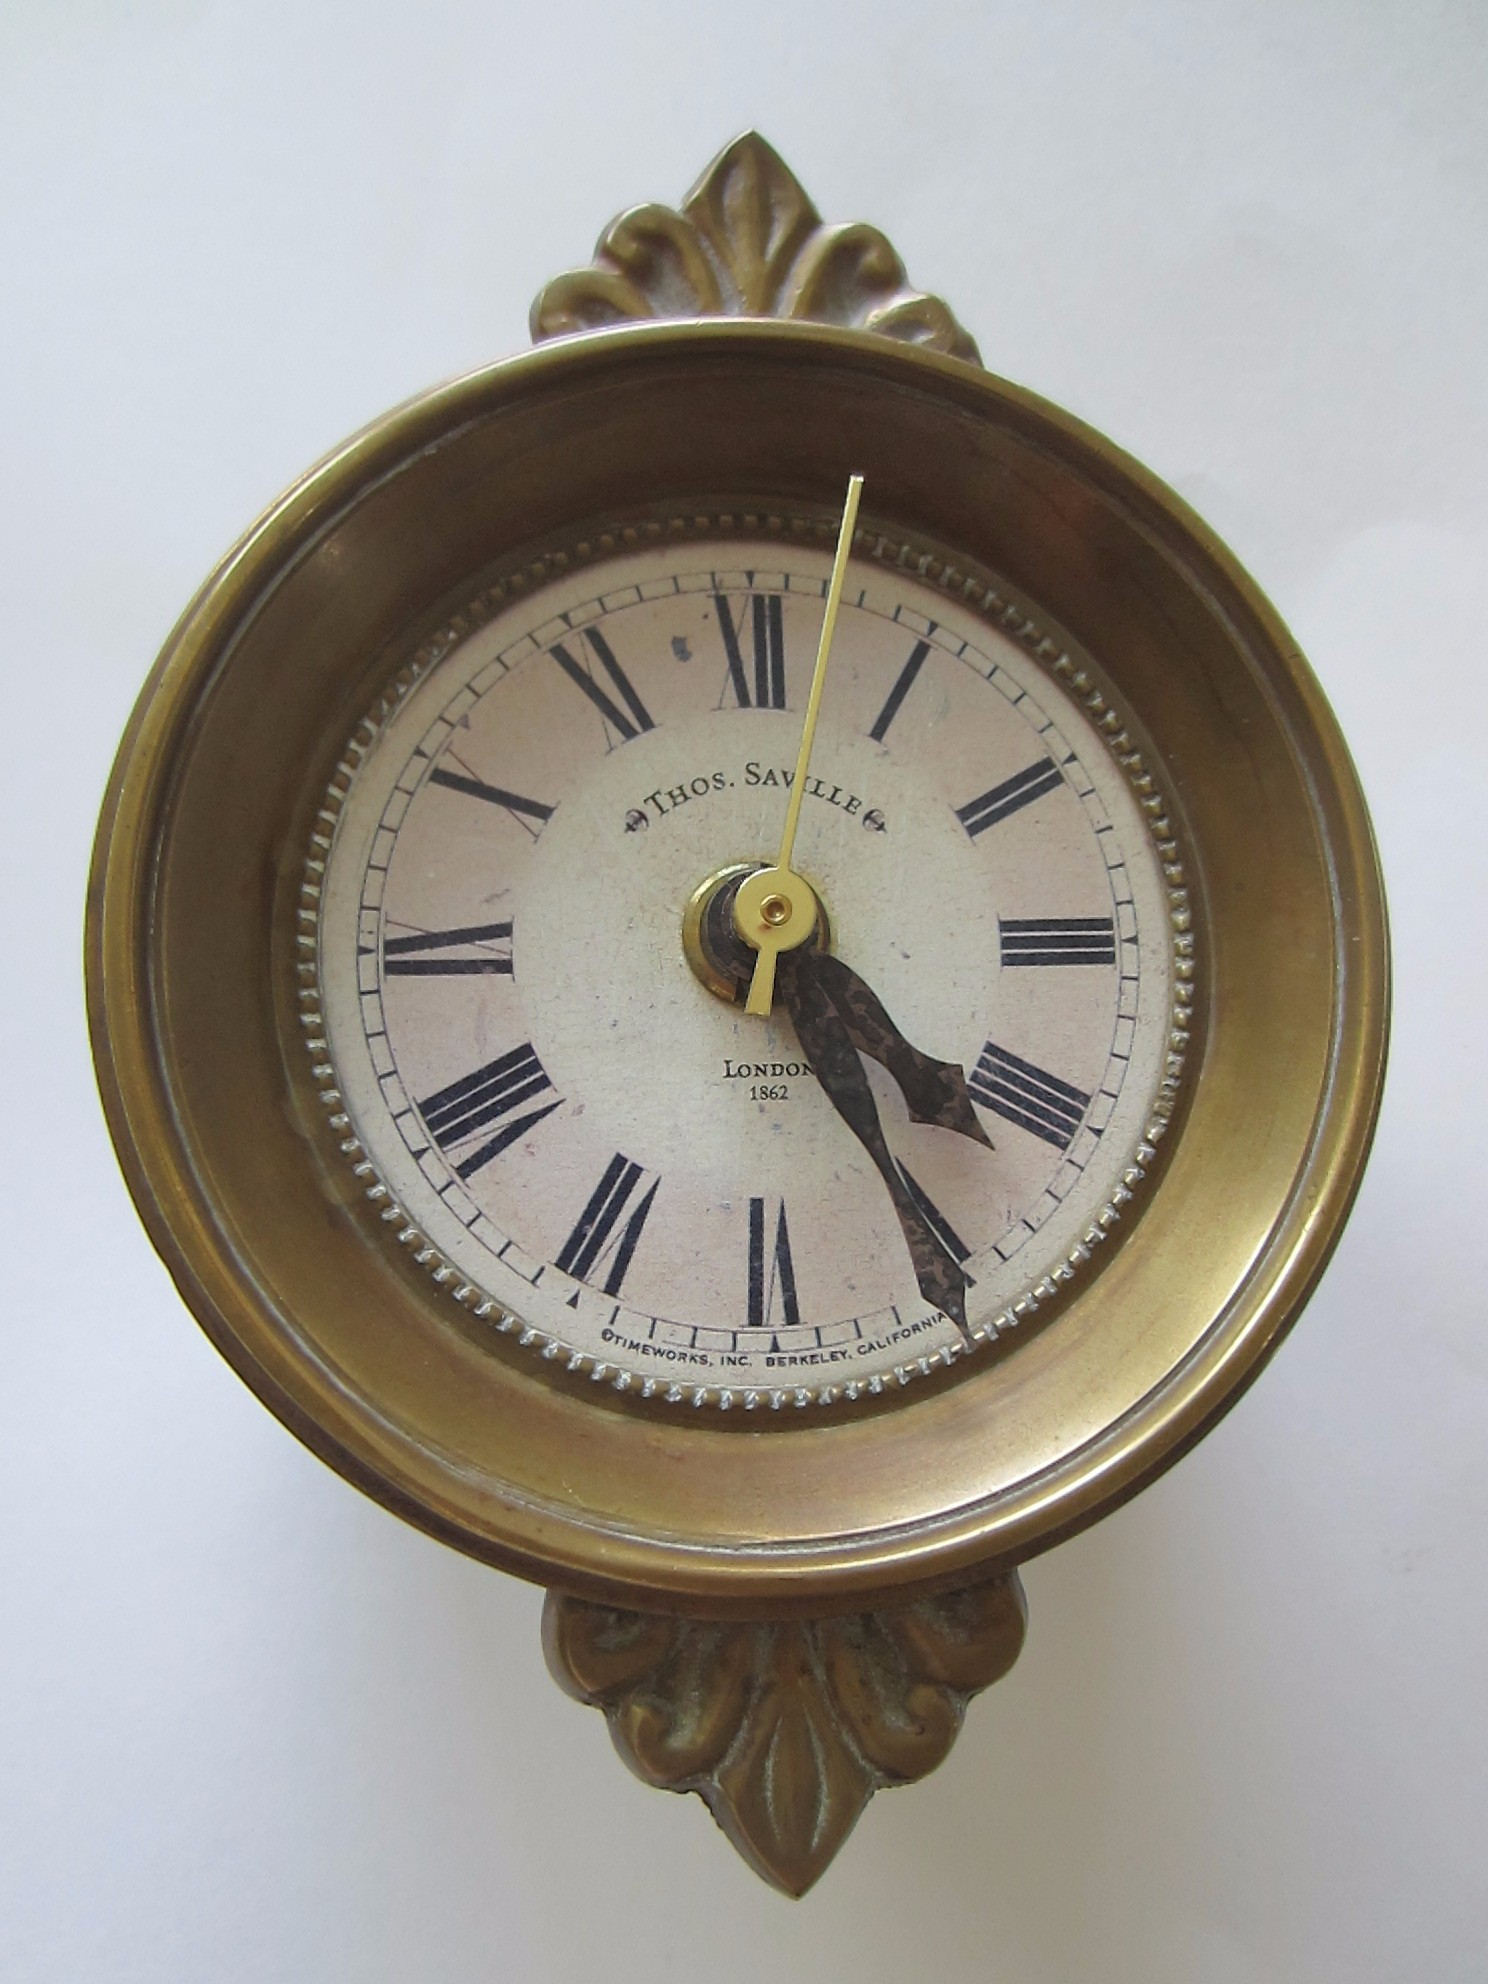 Wall Clocks Sales Thos Saville London Timeworks Brass Crested Wall Clock